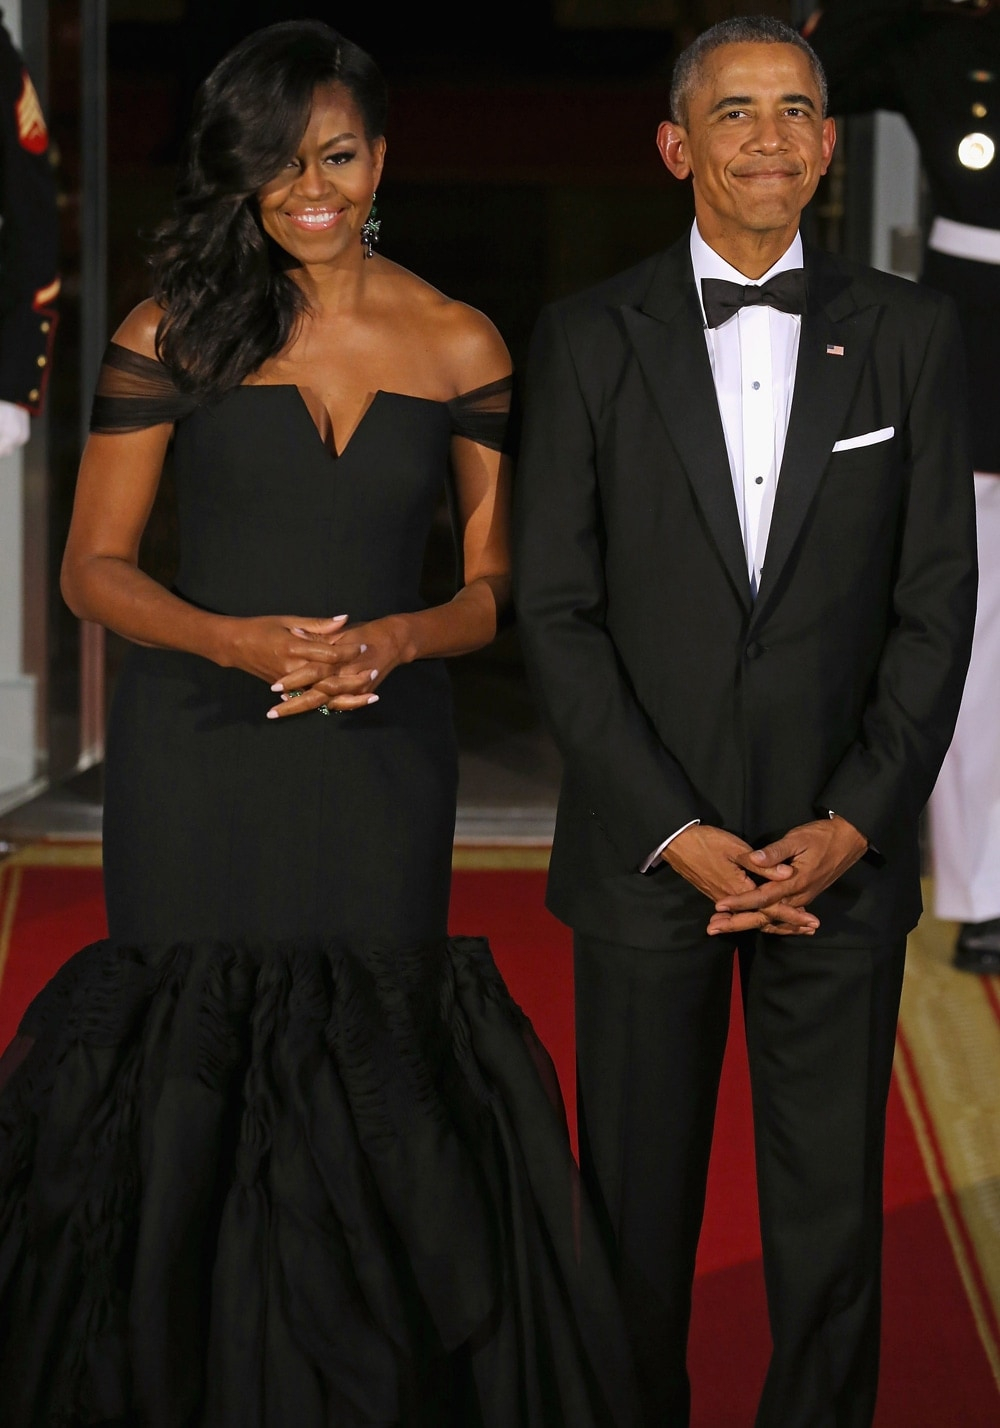 Michelle and Barack Obama 2015 State Dinner